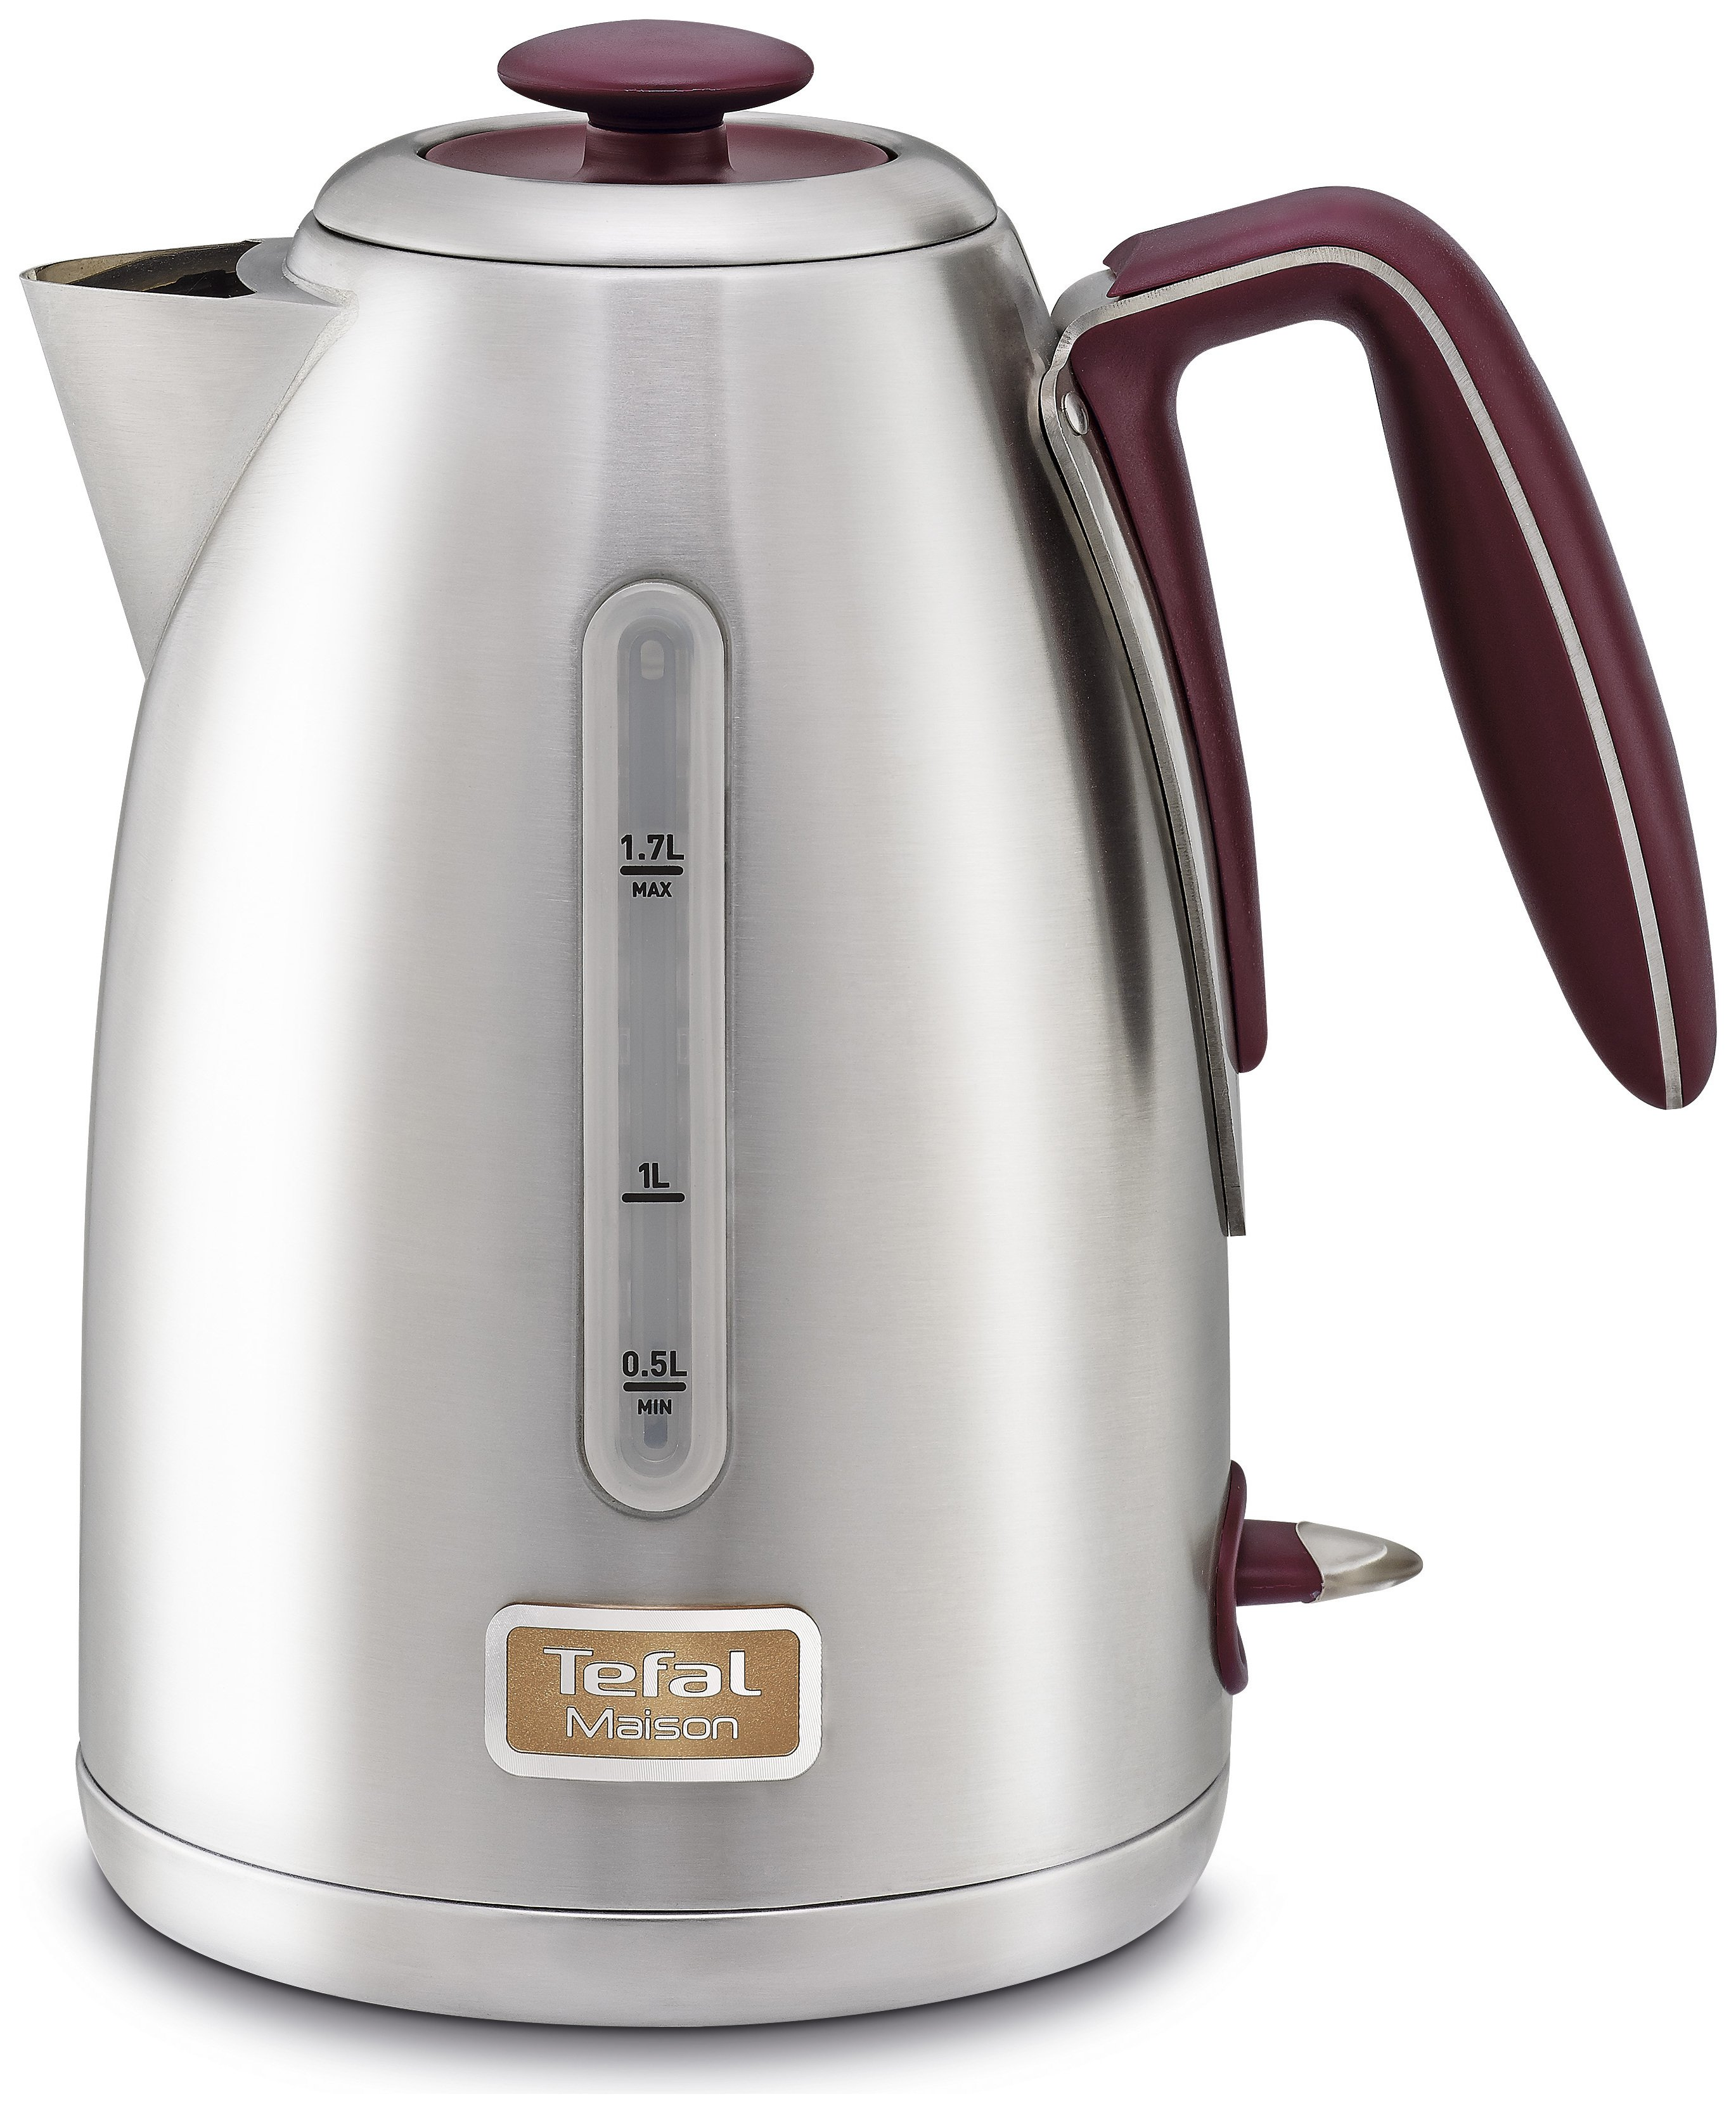 'Tefal - Maison - Kettle - Red